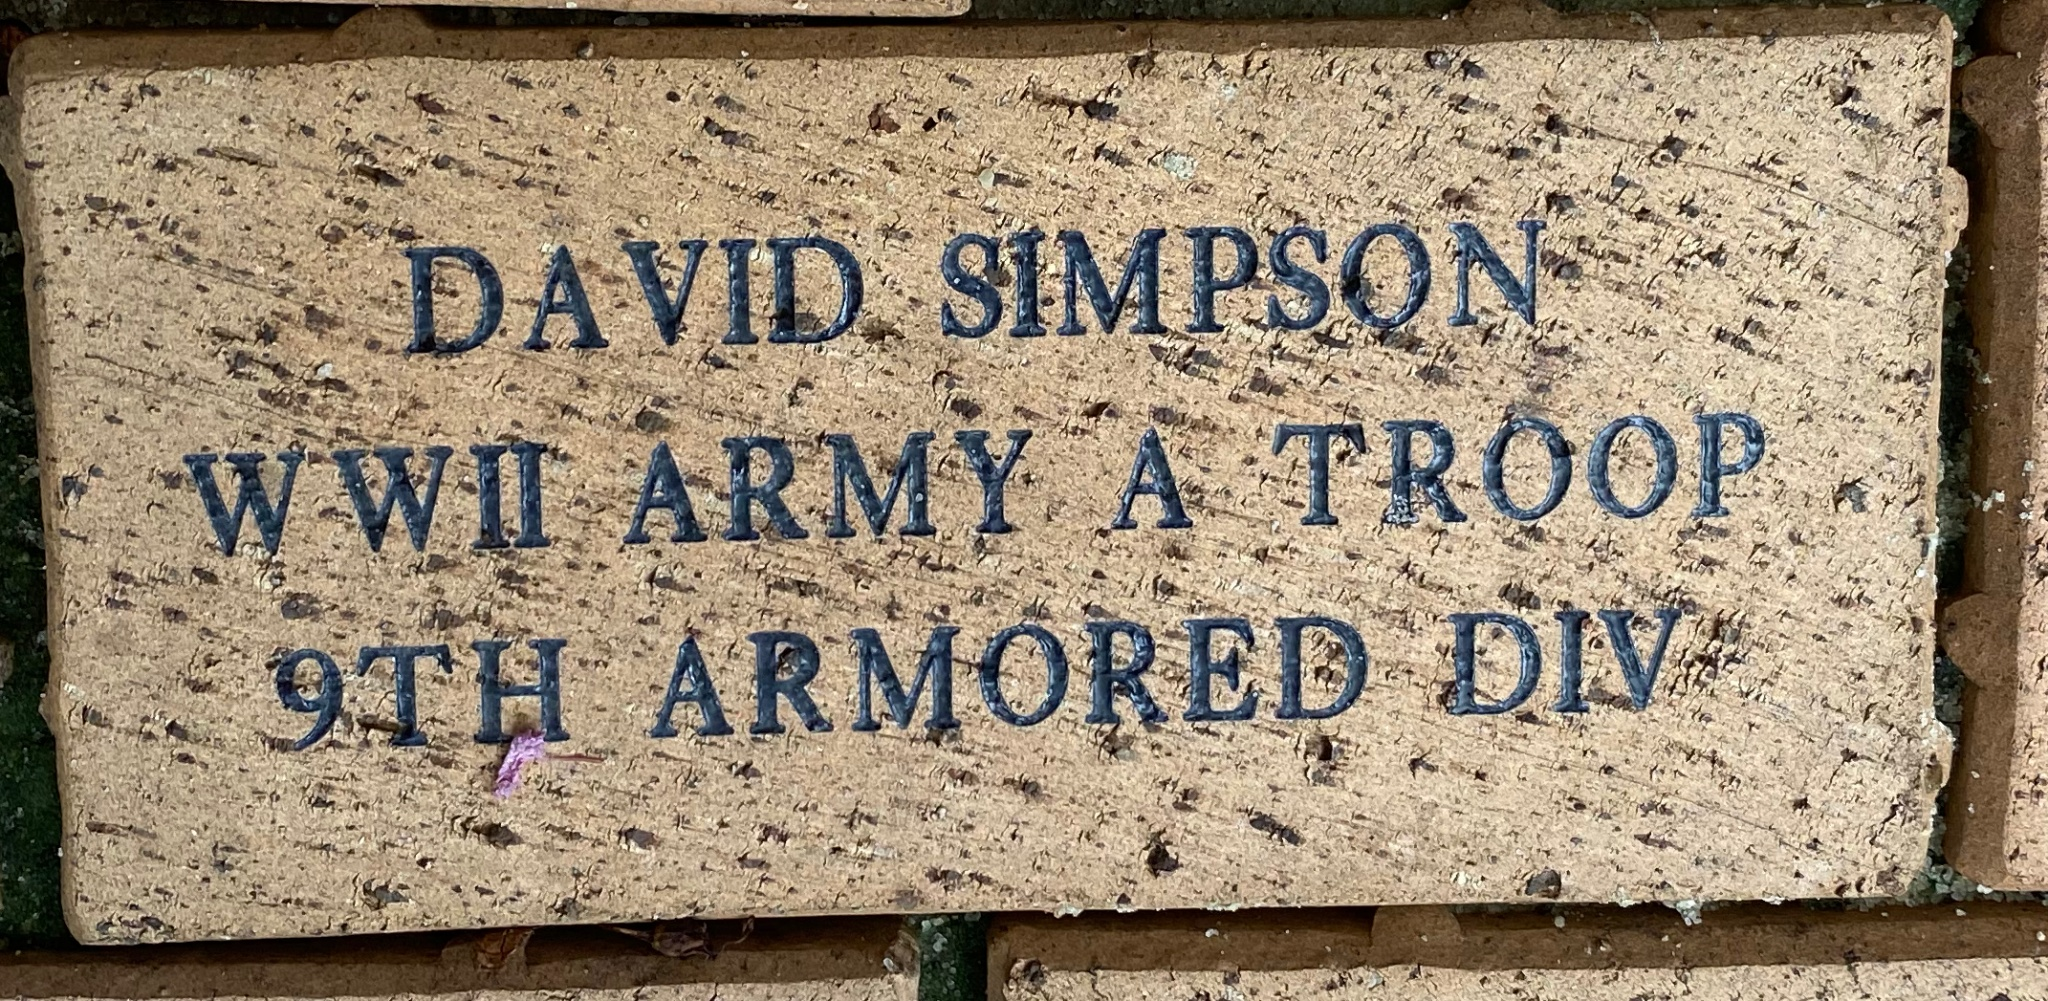 DAVID SIMPSON WWII ARMY A TROOP 9TH ARMORED DIV